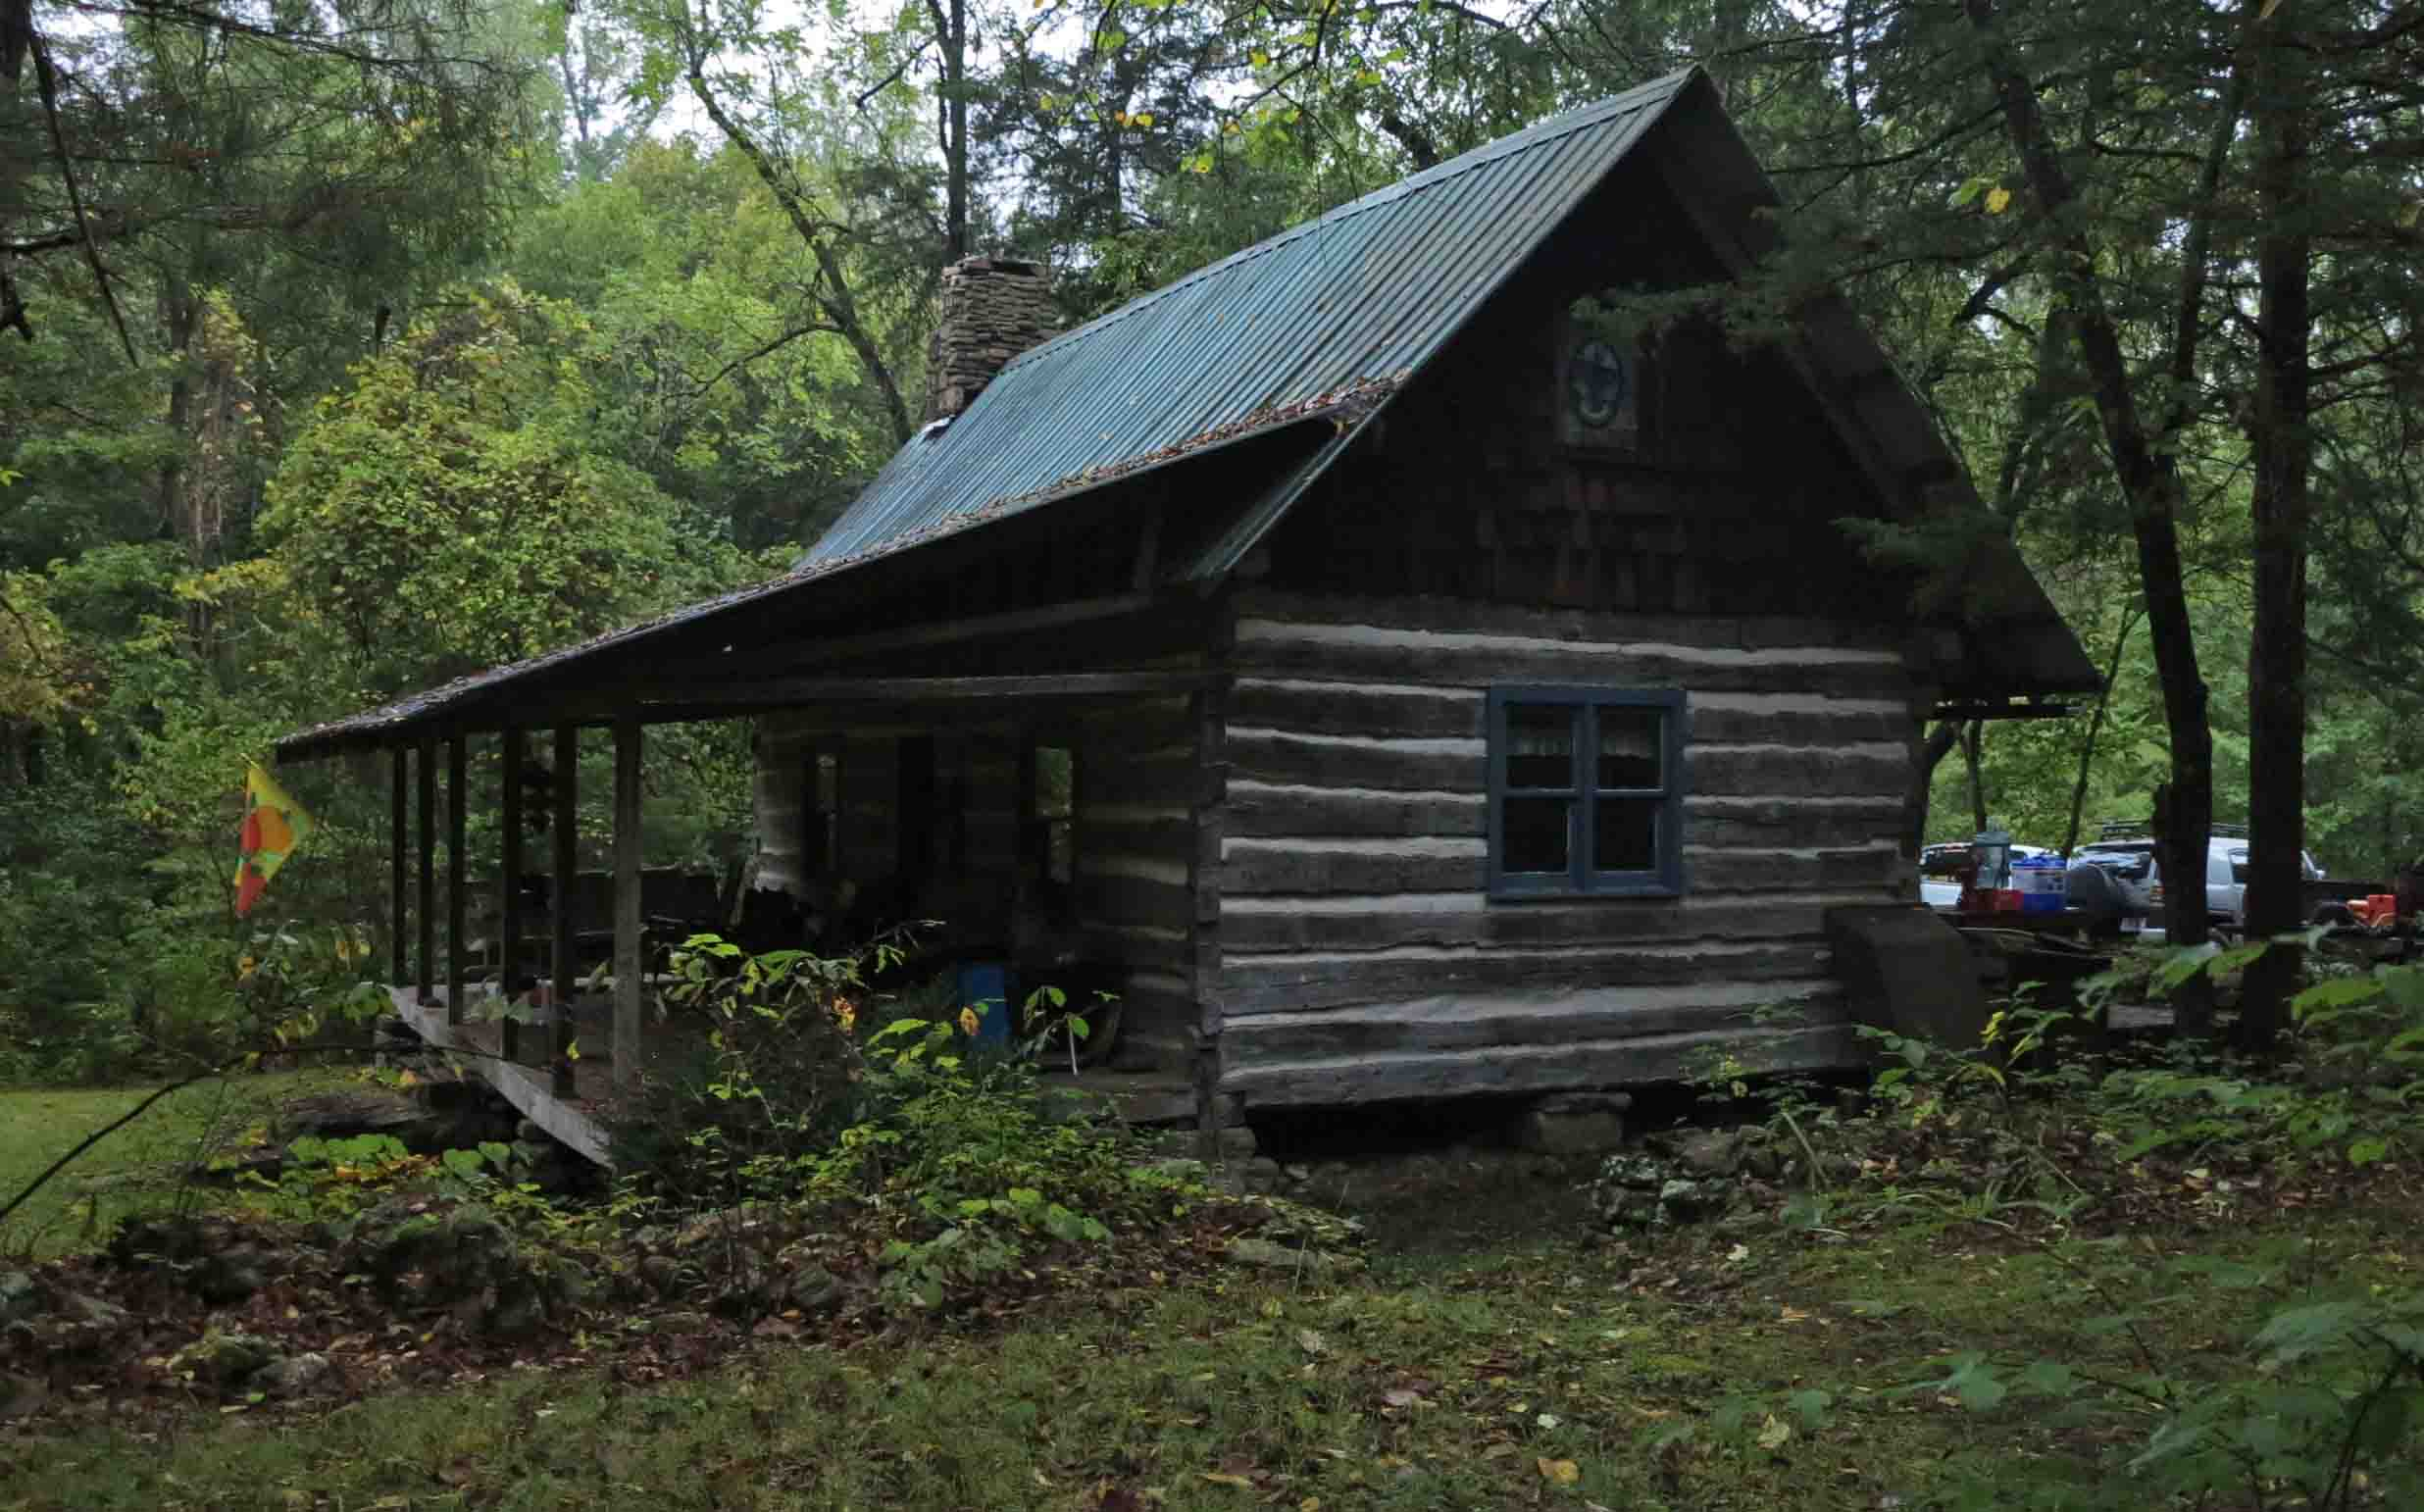 A special place somewhere in the ozarks ozarkmountainhiker for Ozark national forest cabins